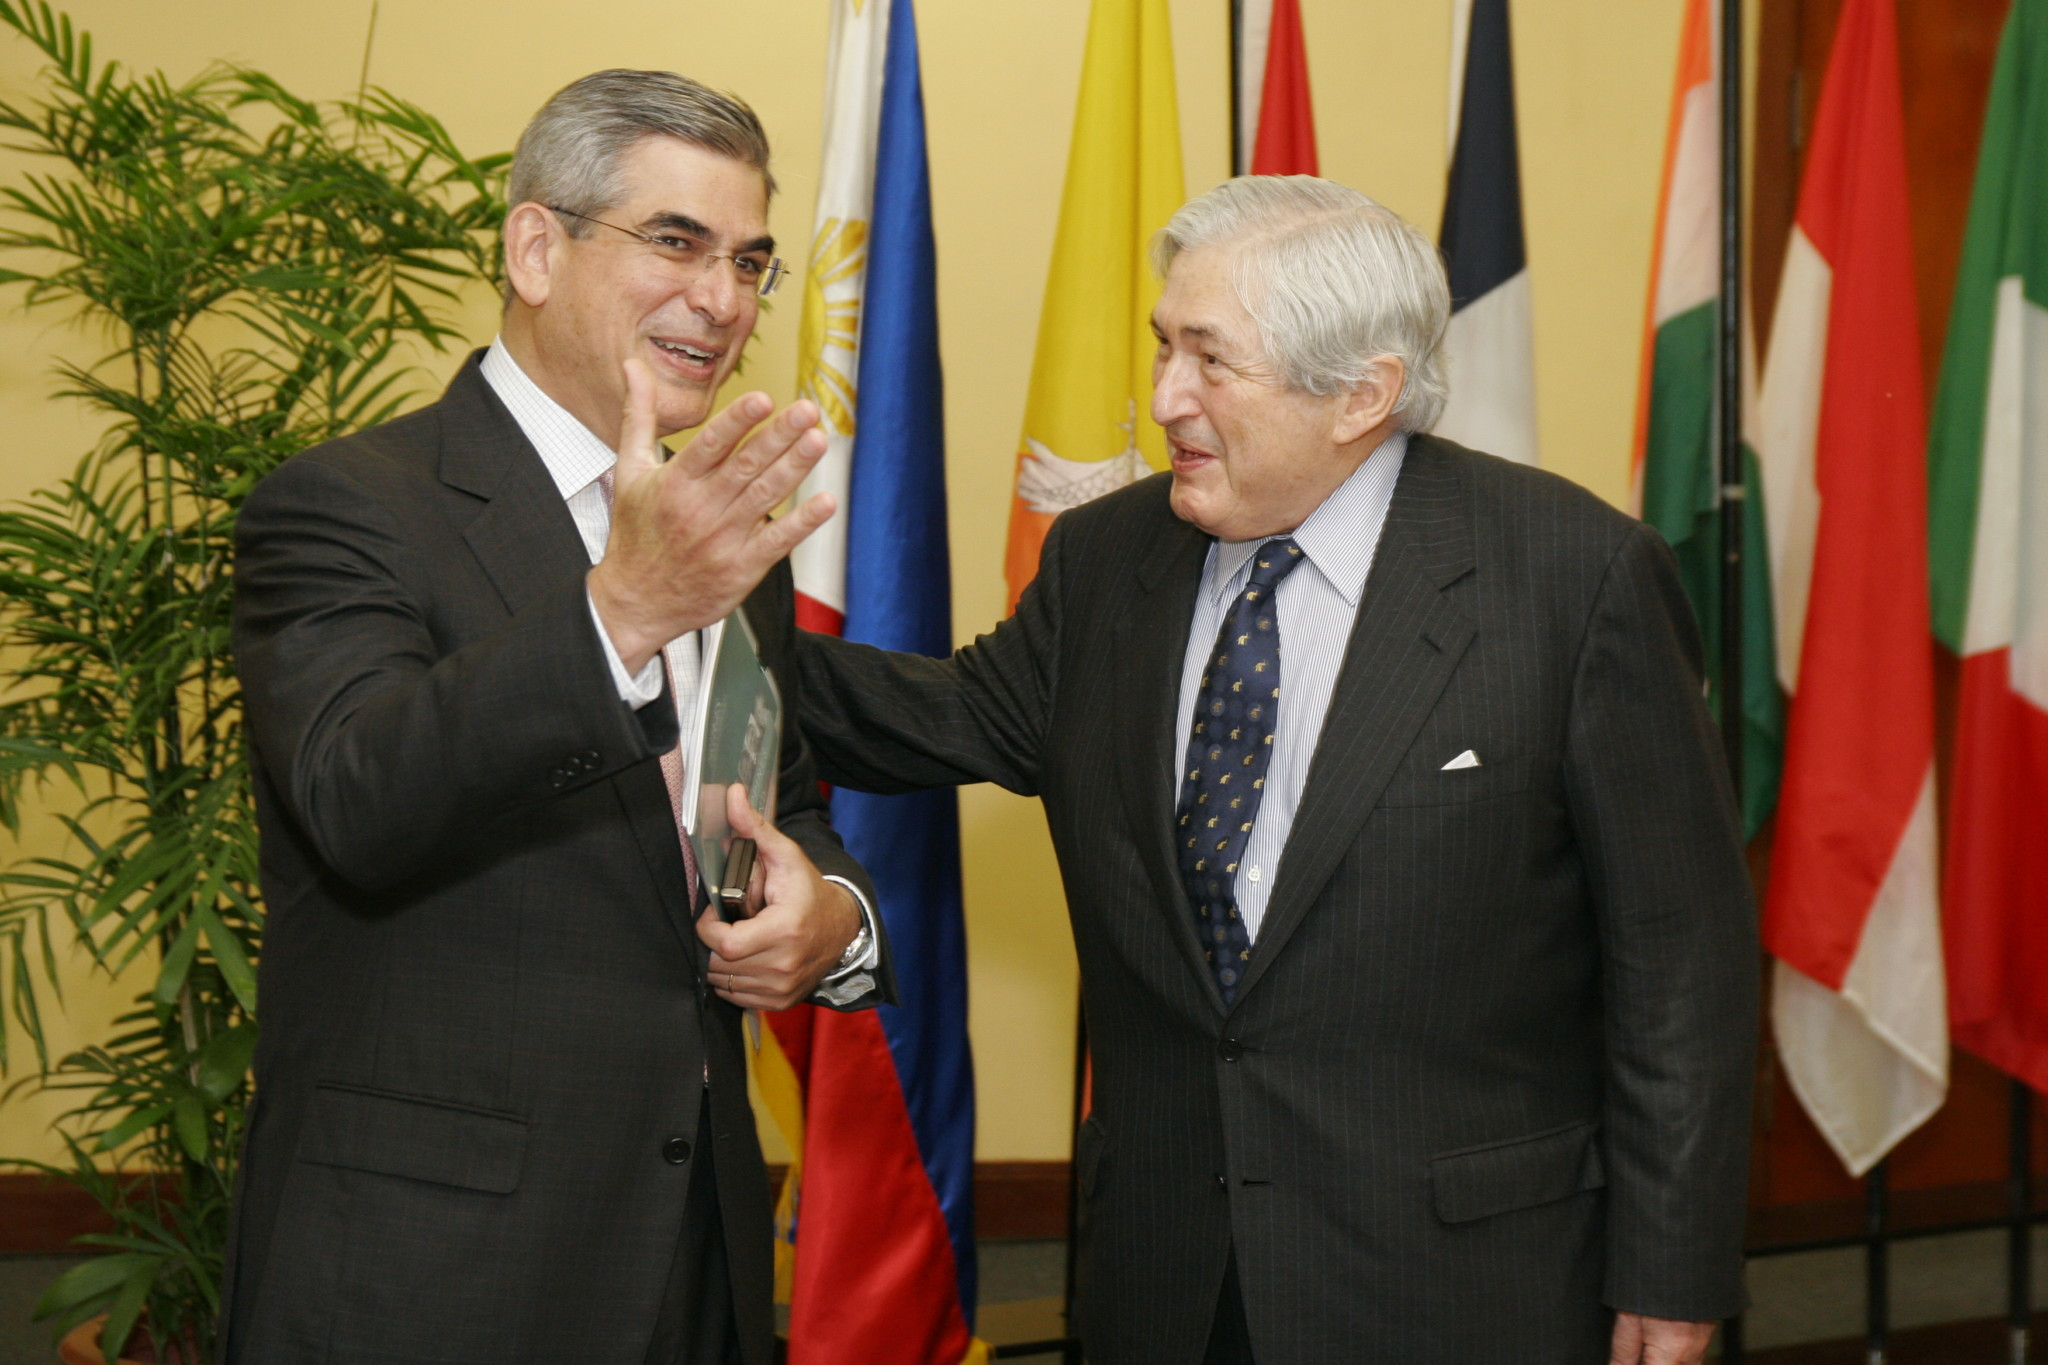 Former World Bank President Dr. James D. Wolfensohn with the Philippine Chairman of Bridges Augusto Zobel de Ayala